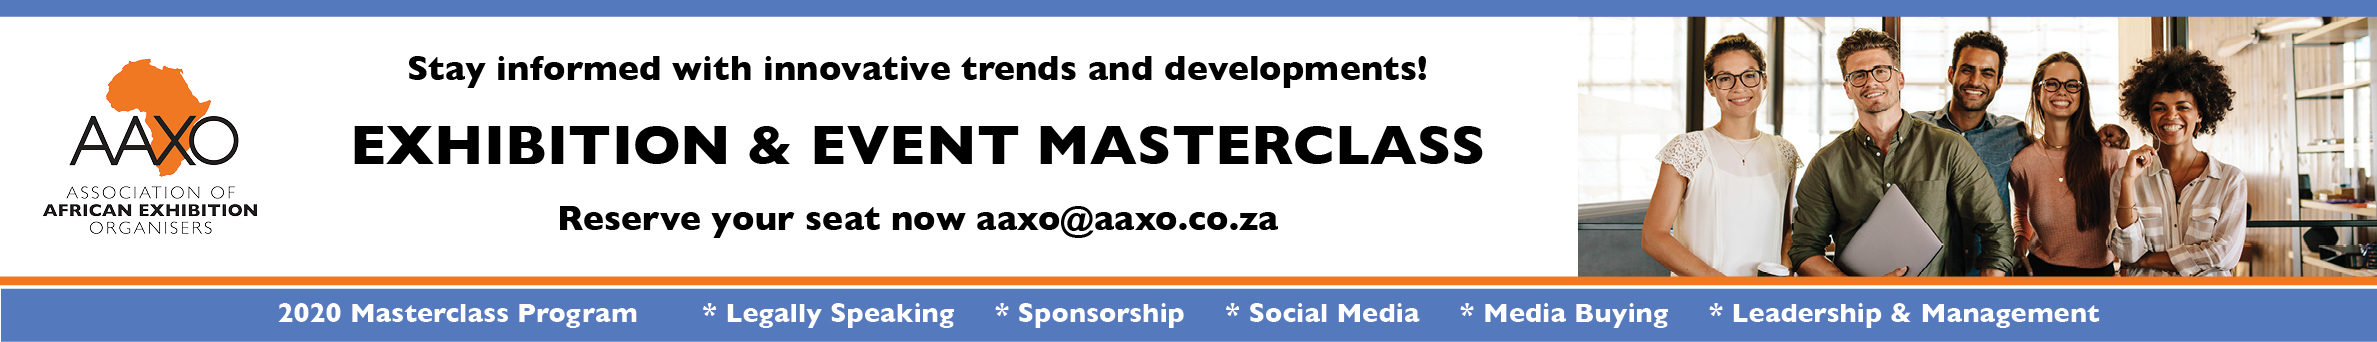 AAXO home page banners from ads V6 NEW LOGO6